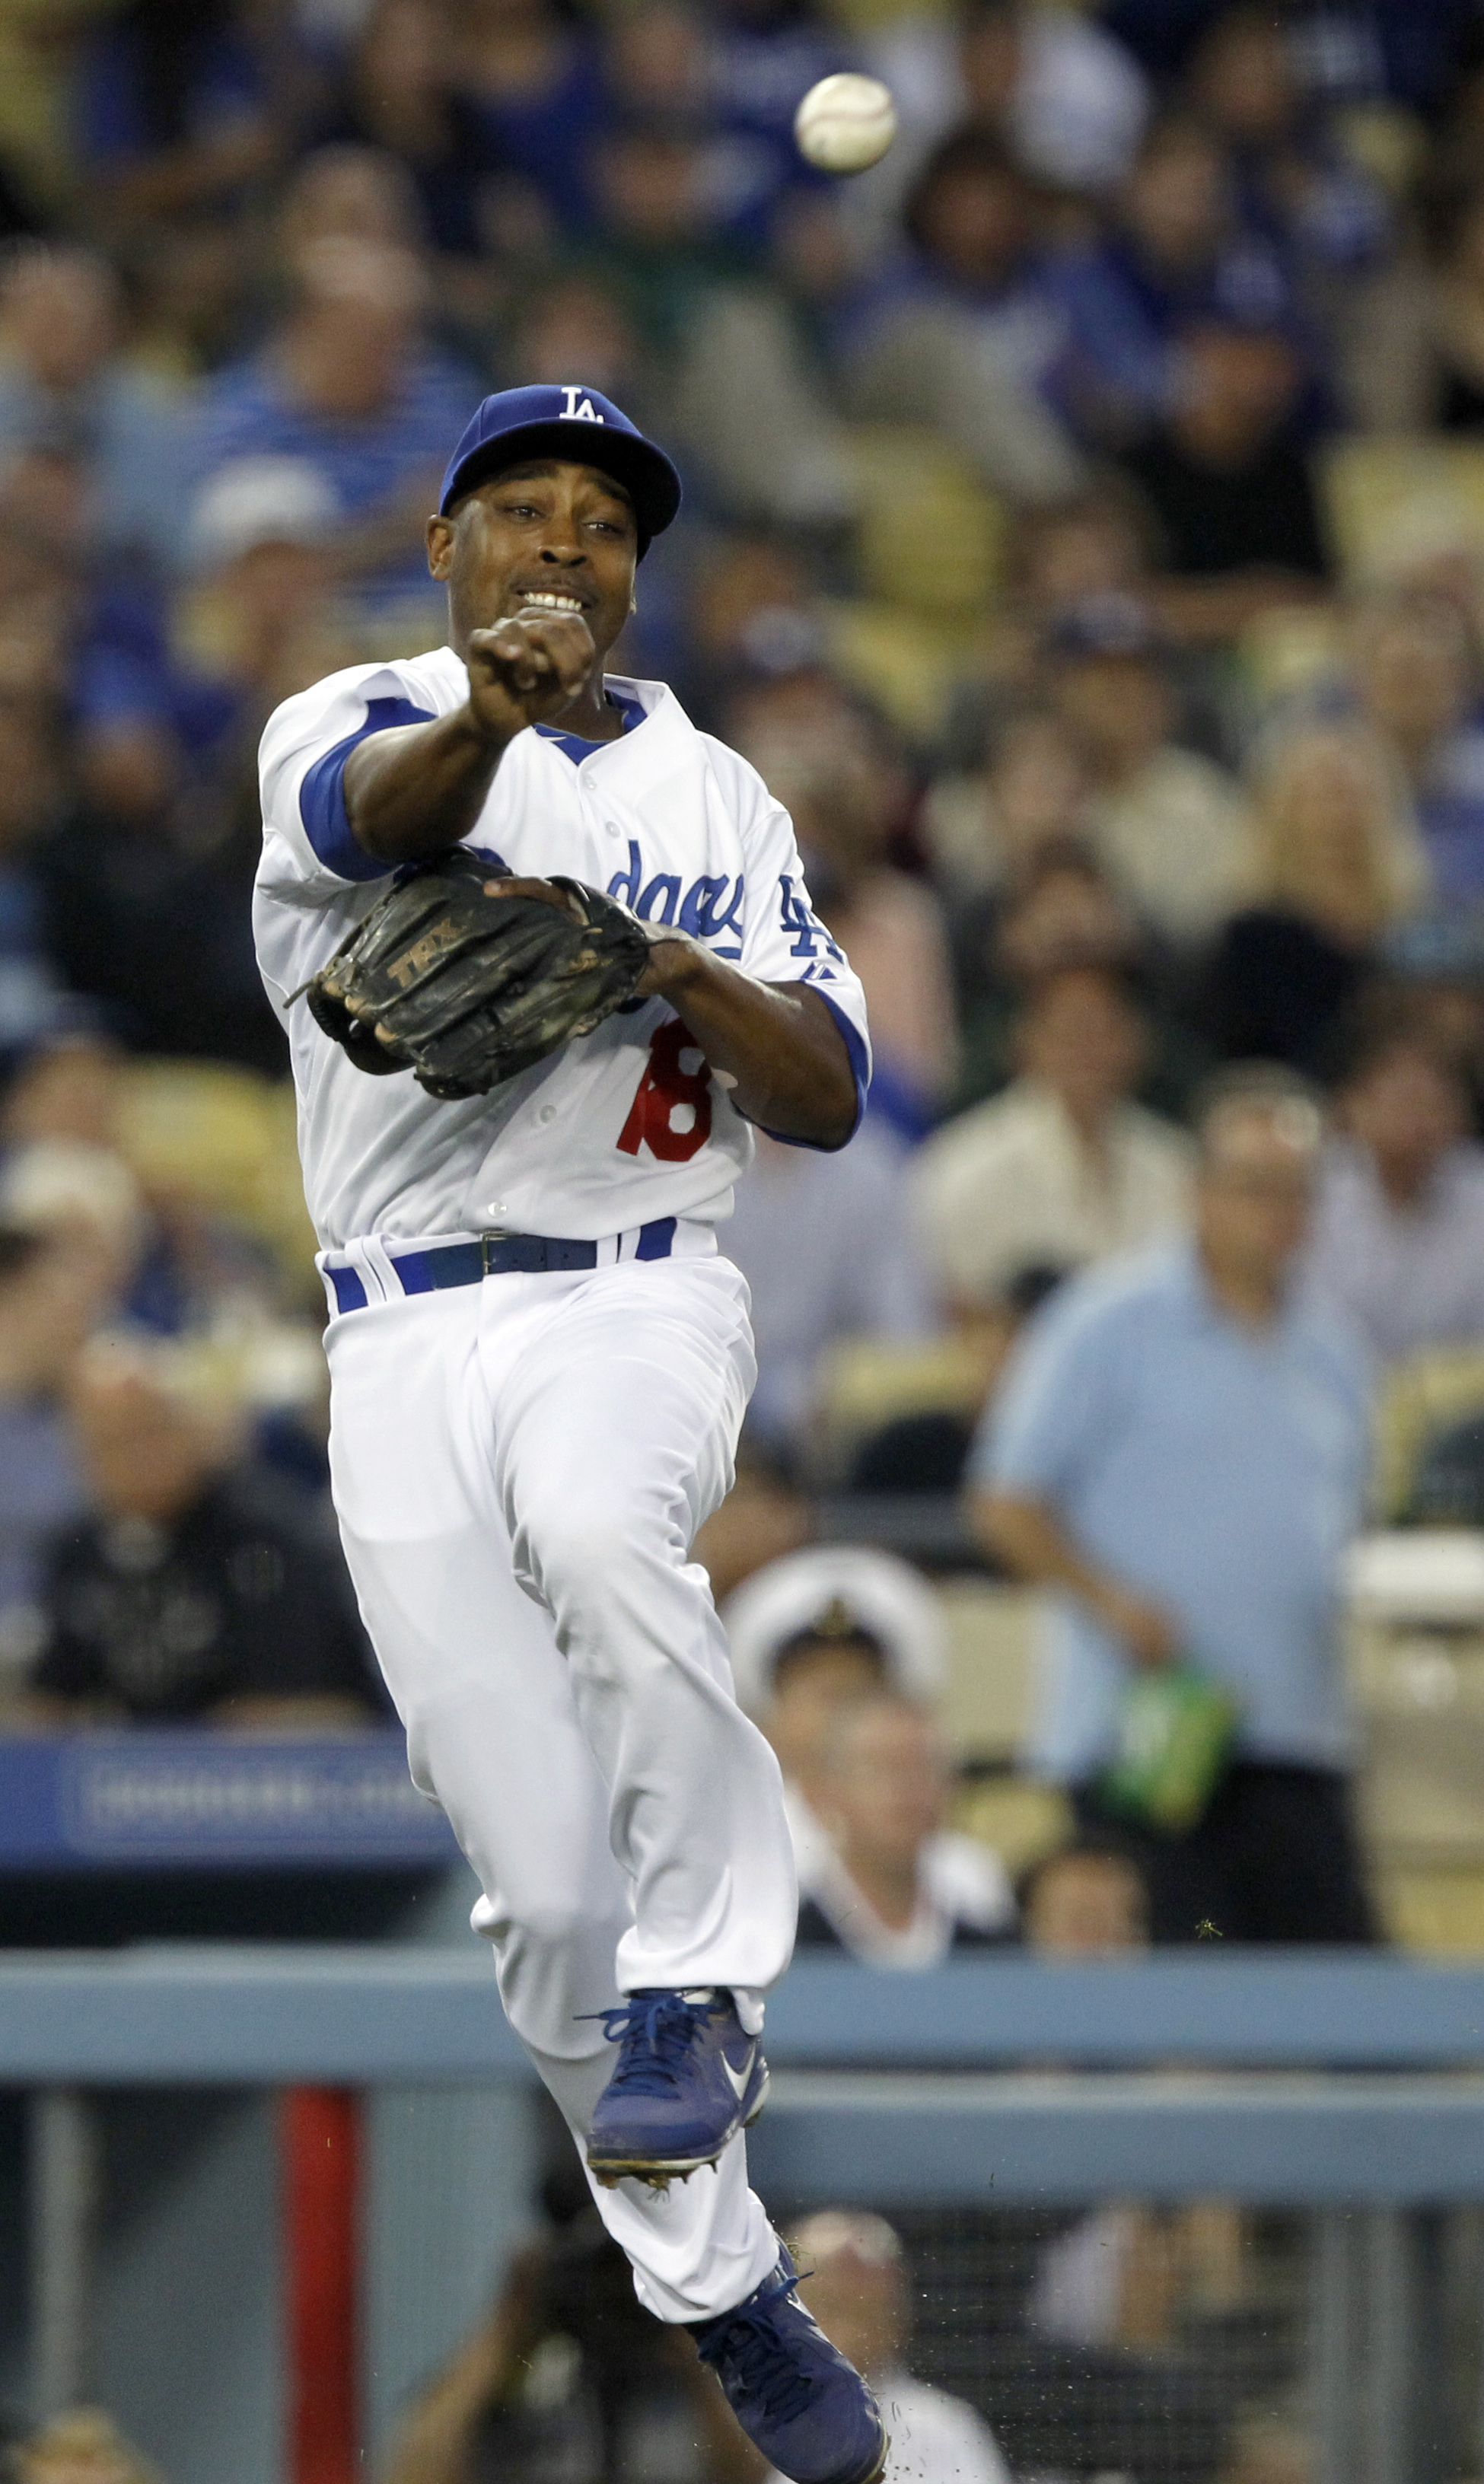 Los Angeles Dodgers third baseman Chone Figgins (18) throws out Arizona Diamondbacks Gerardo Parra in the third inning of a baseball game on Friday, June 13, 2014, in Los Angeles. (AP Photo/Alex Gallardo)